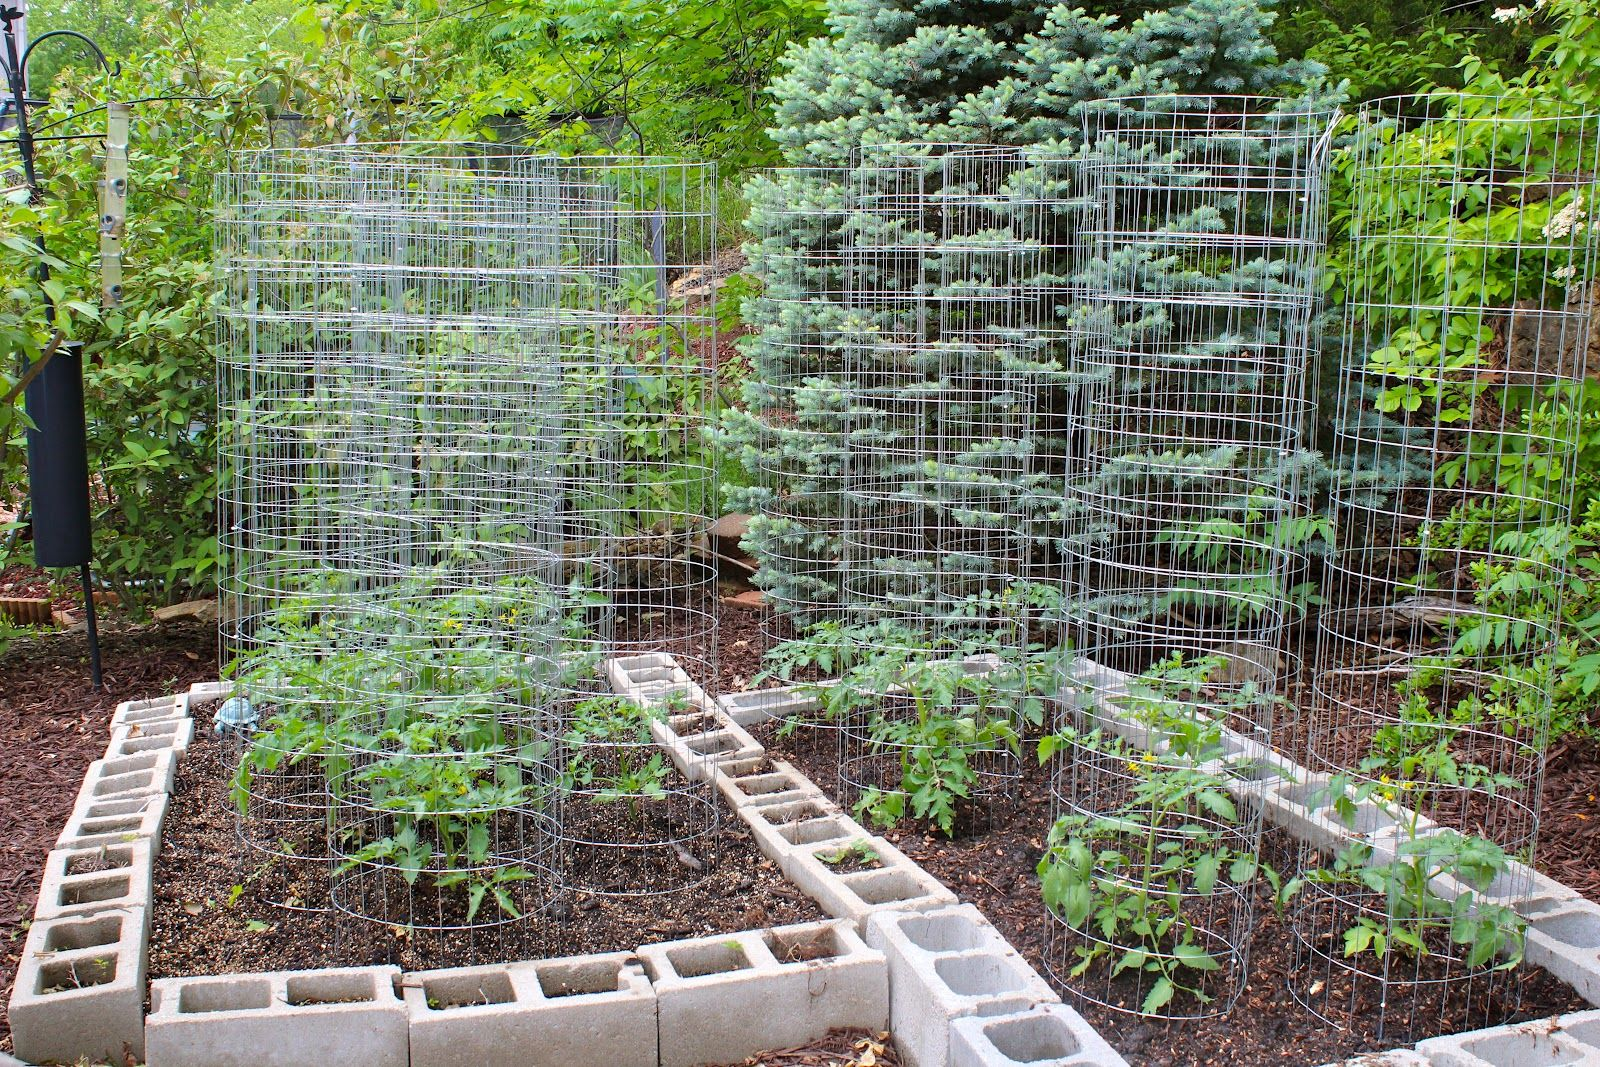 How to Make Your Home Vegetable Garden Look Beautiful | Vegetable ...